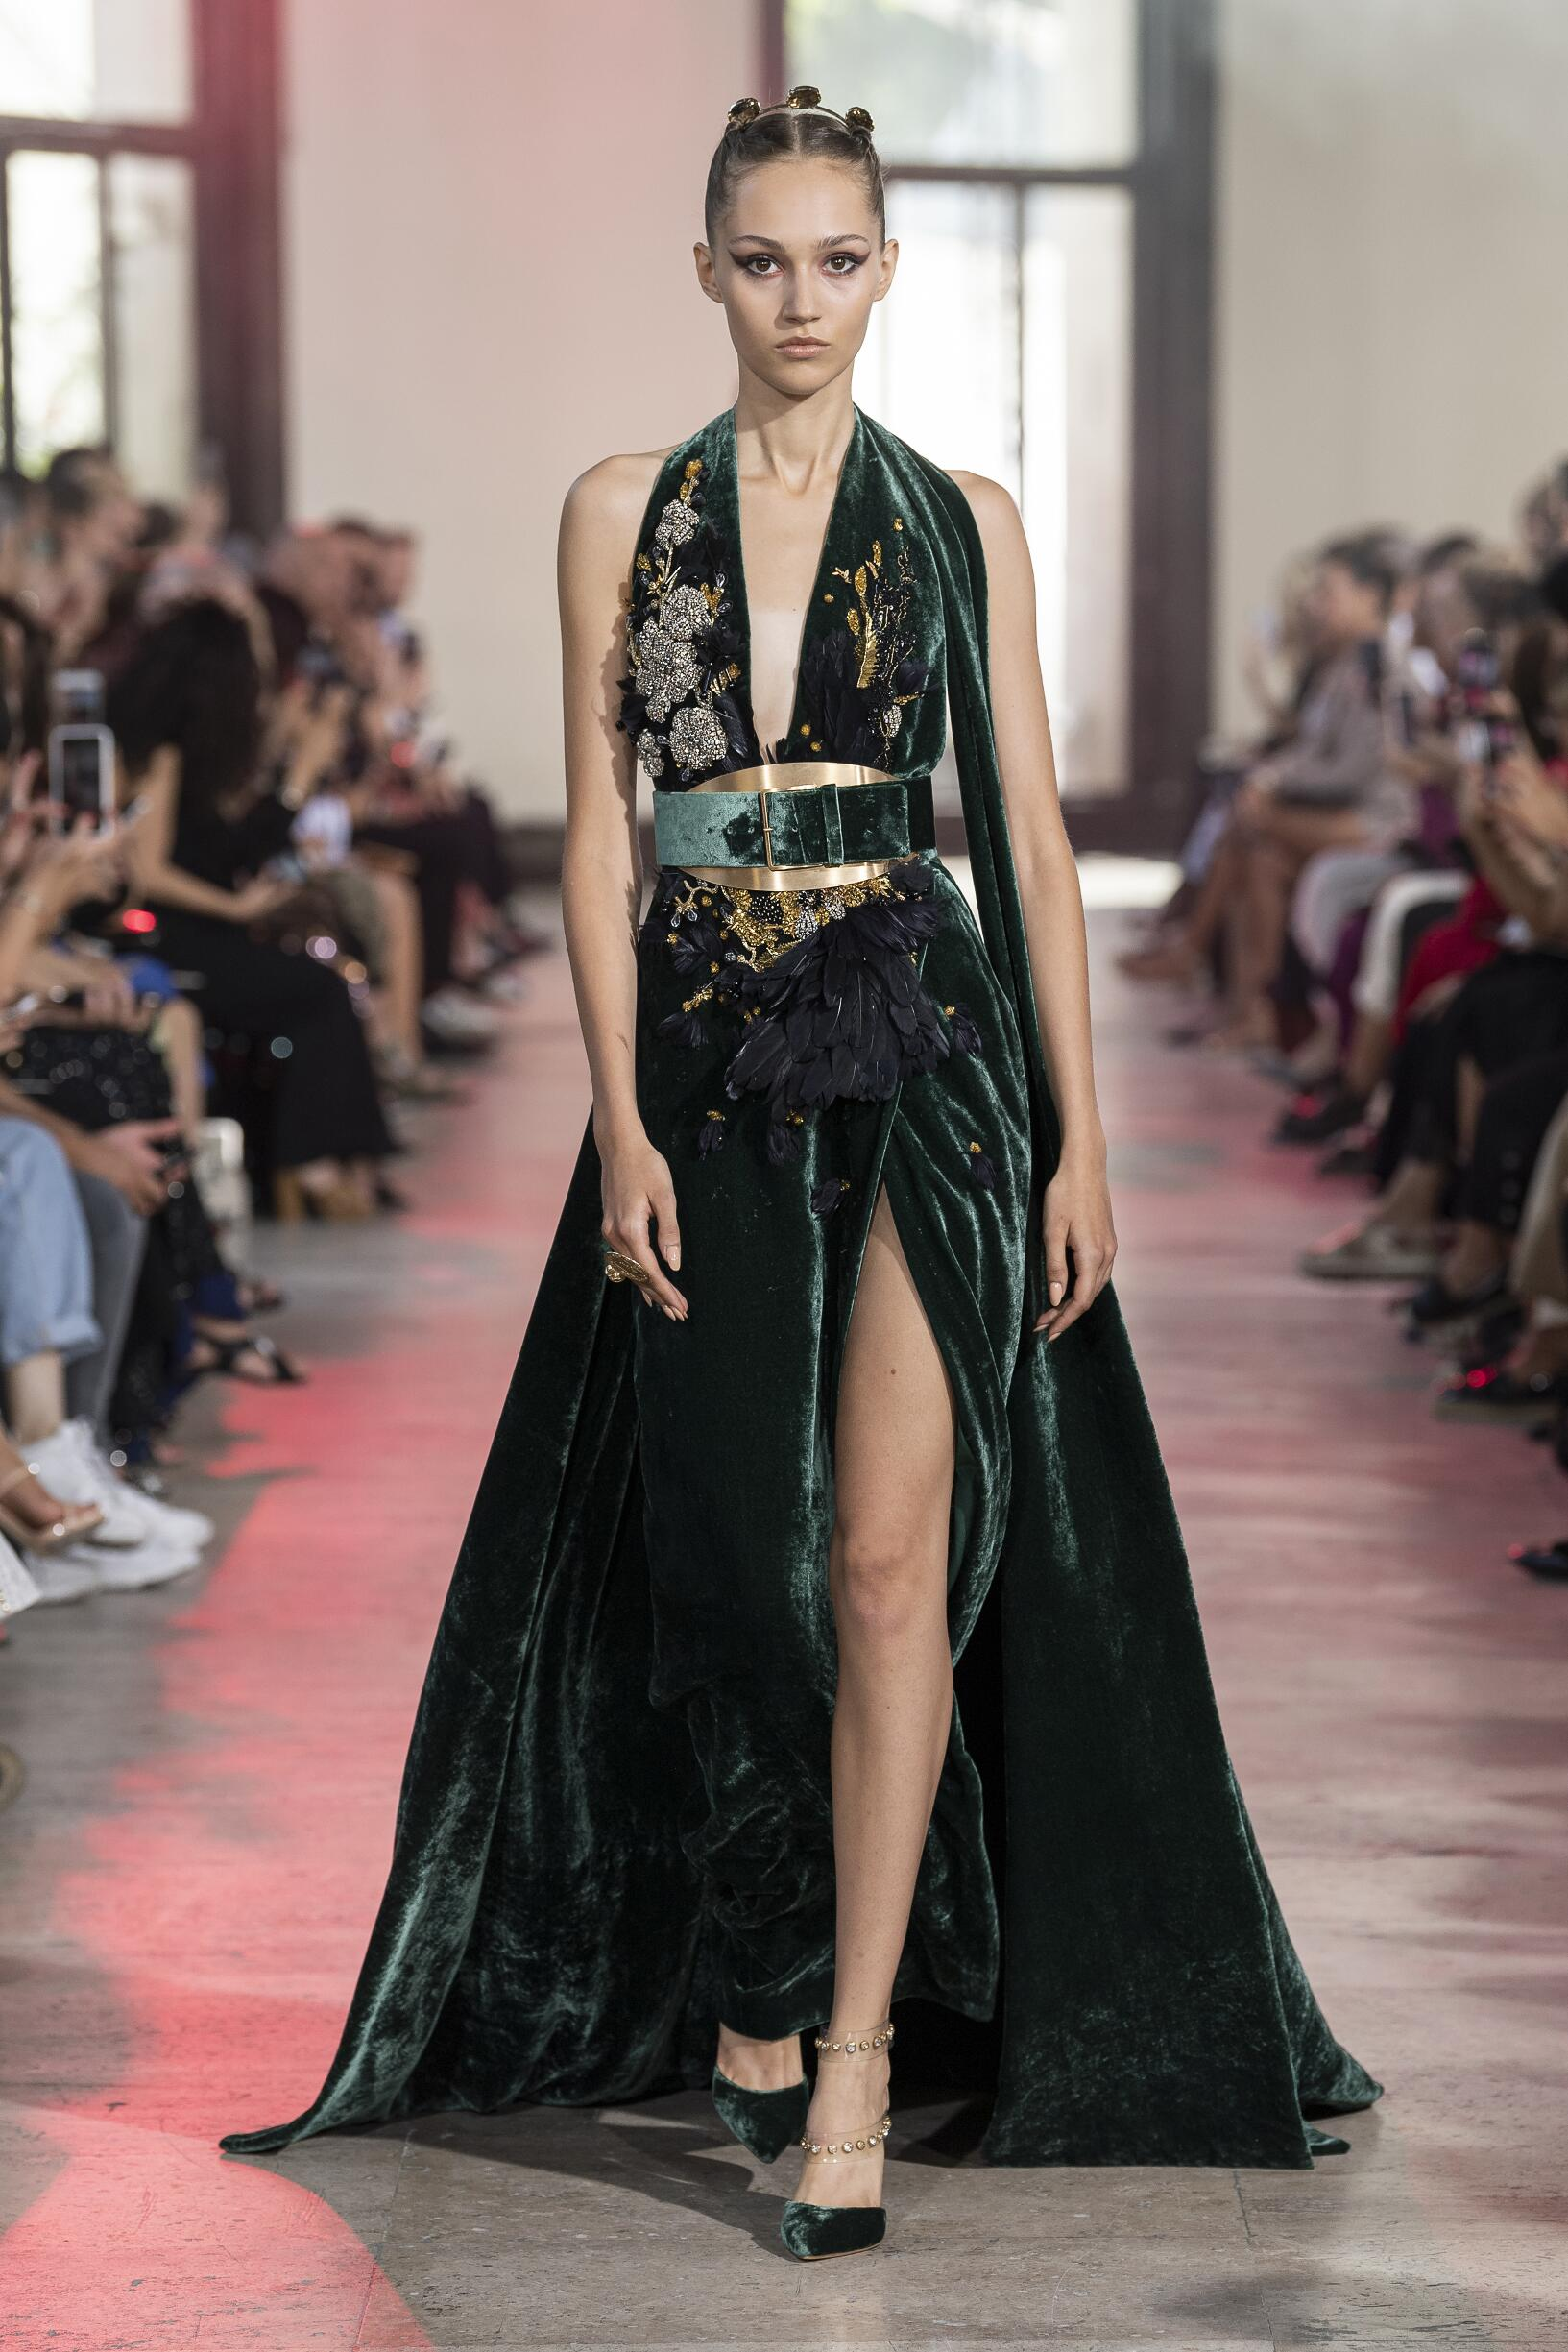 Runway Elie Saab Haute Couture Fall Winter 2019 Collection Paris